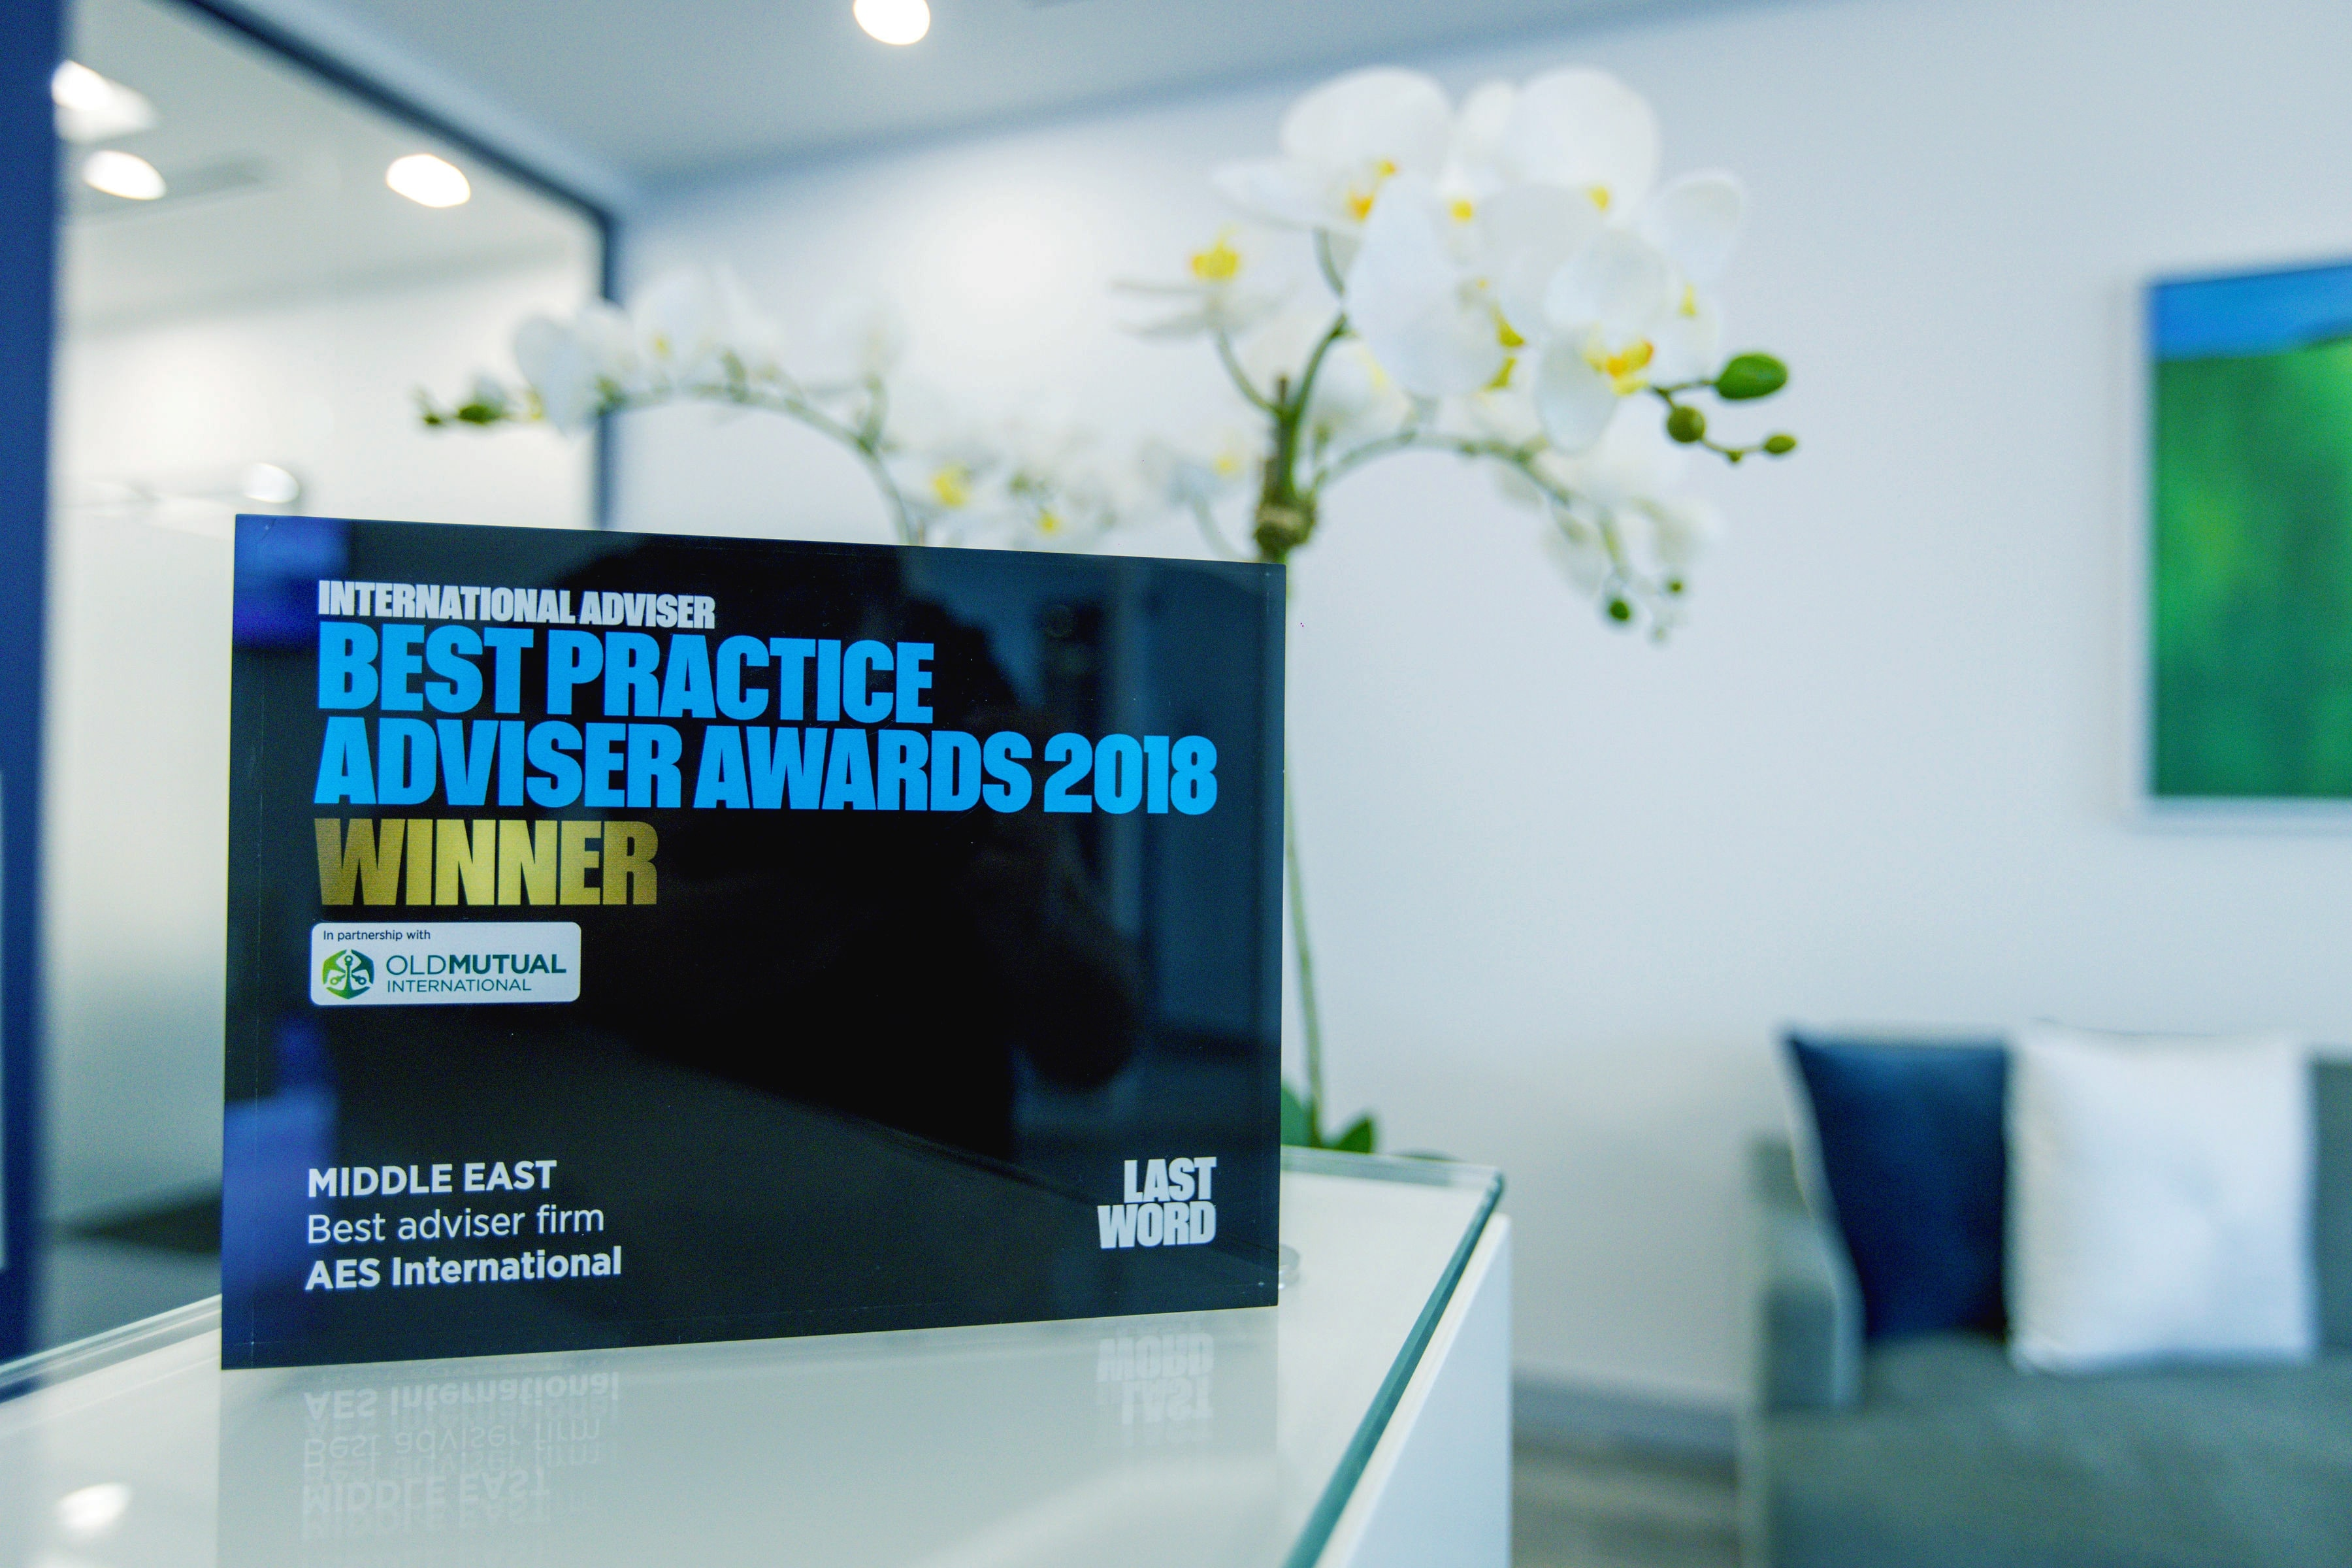 Best Global Adviser Firm of the year - AES International